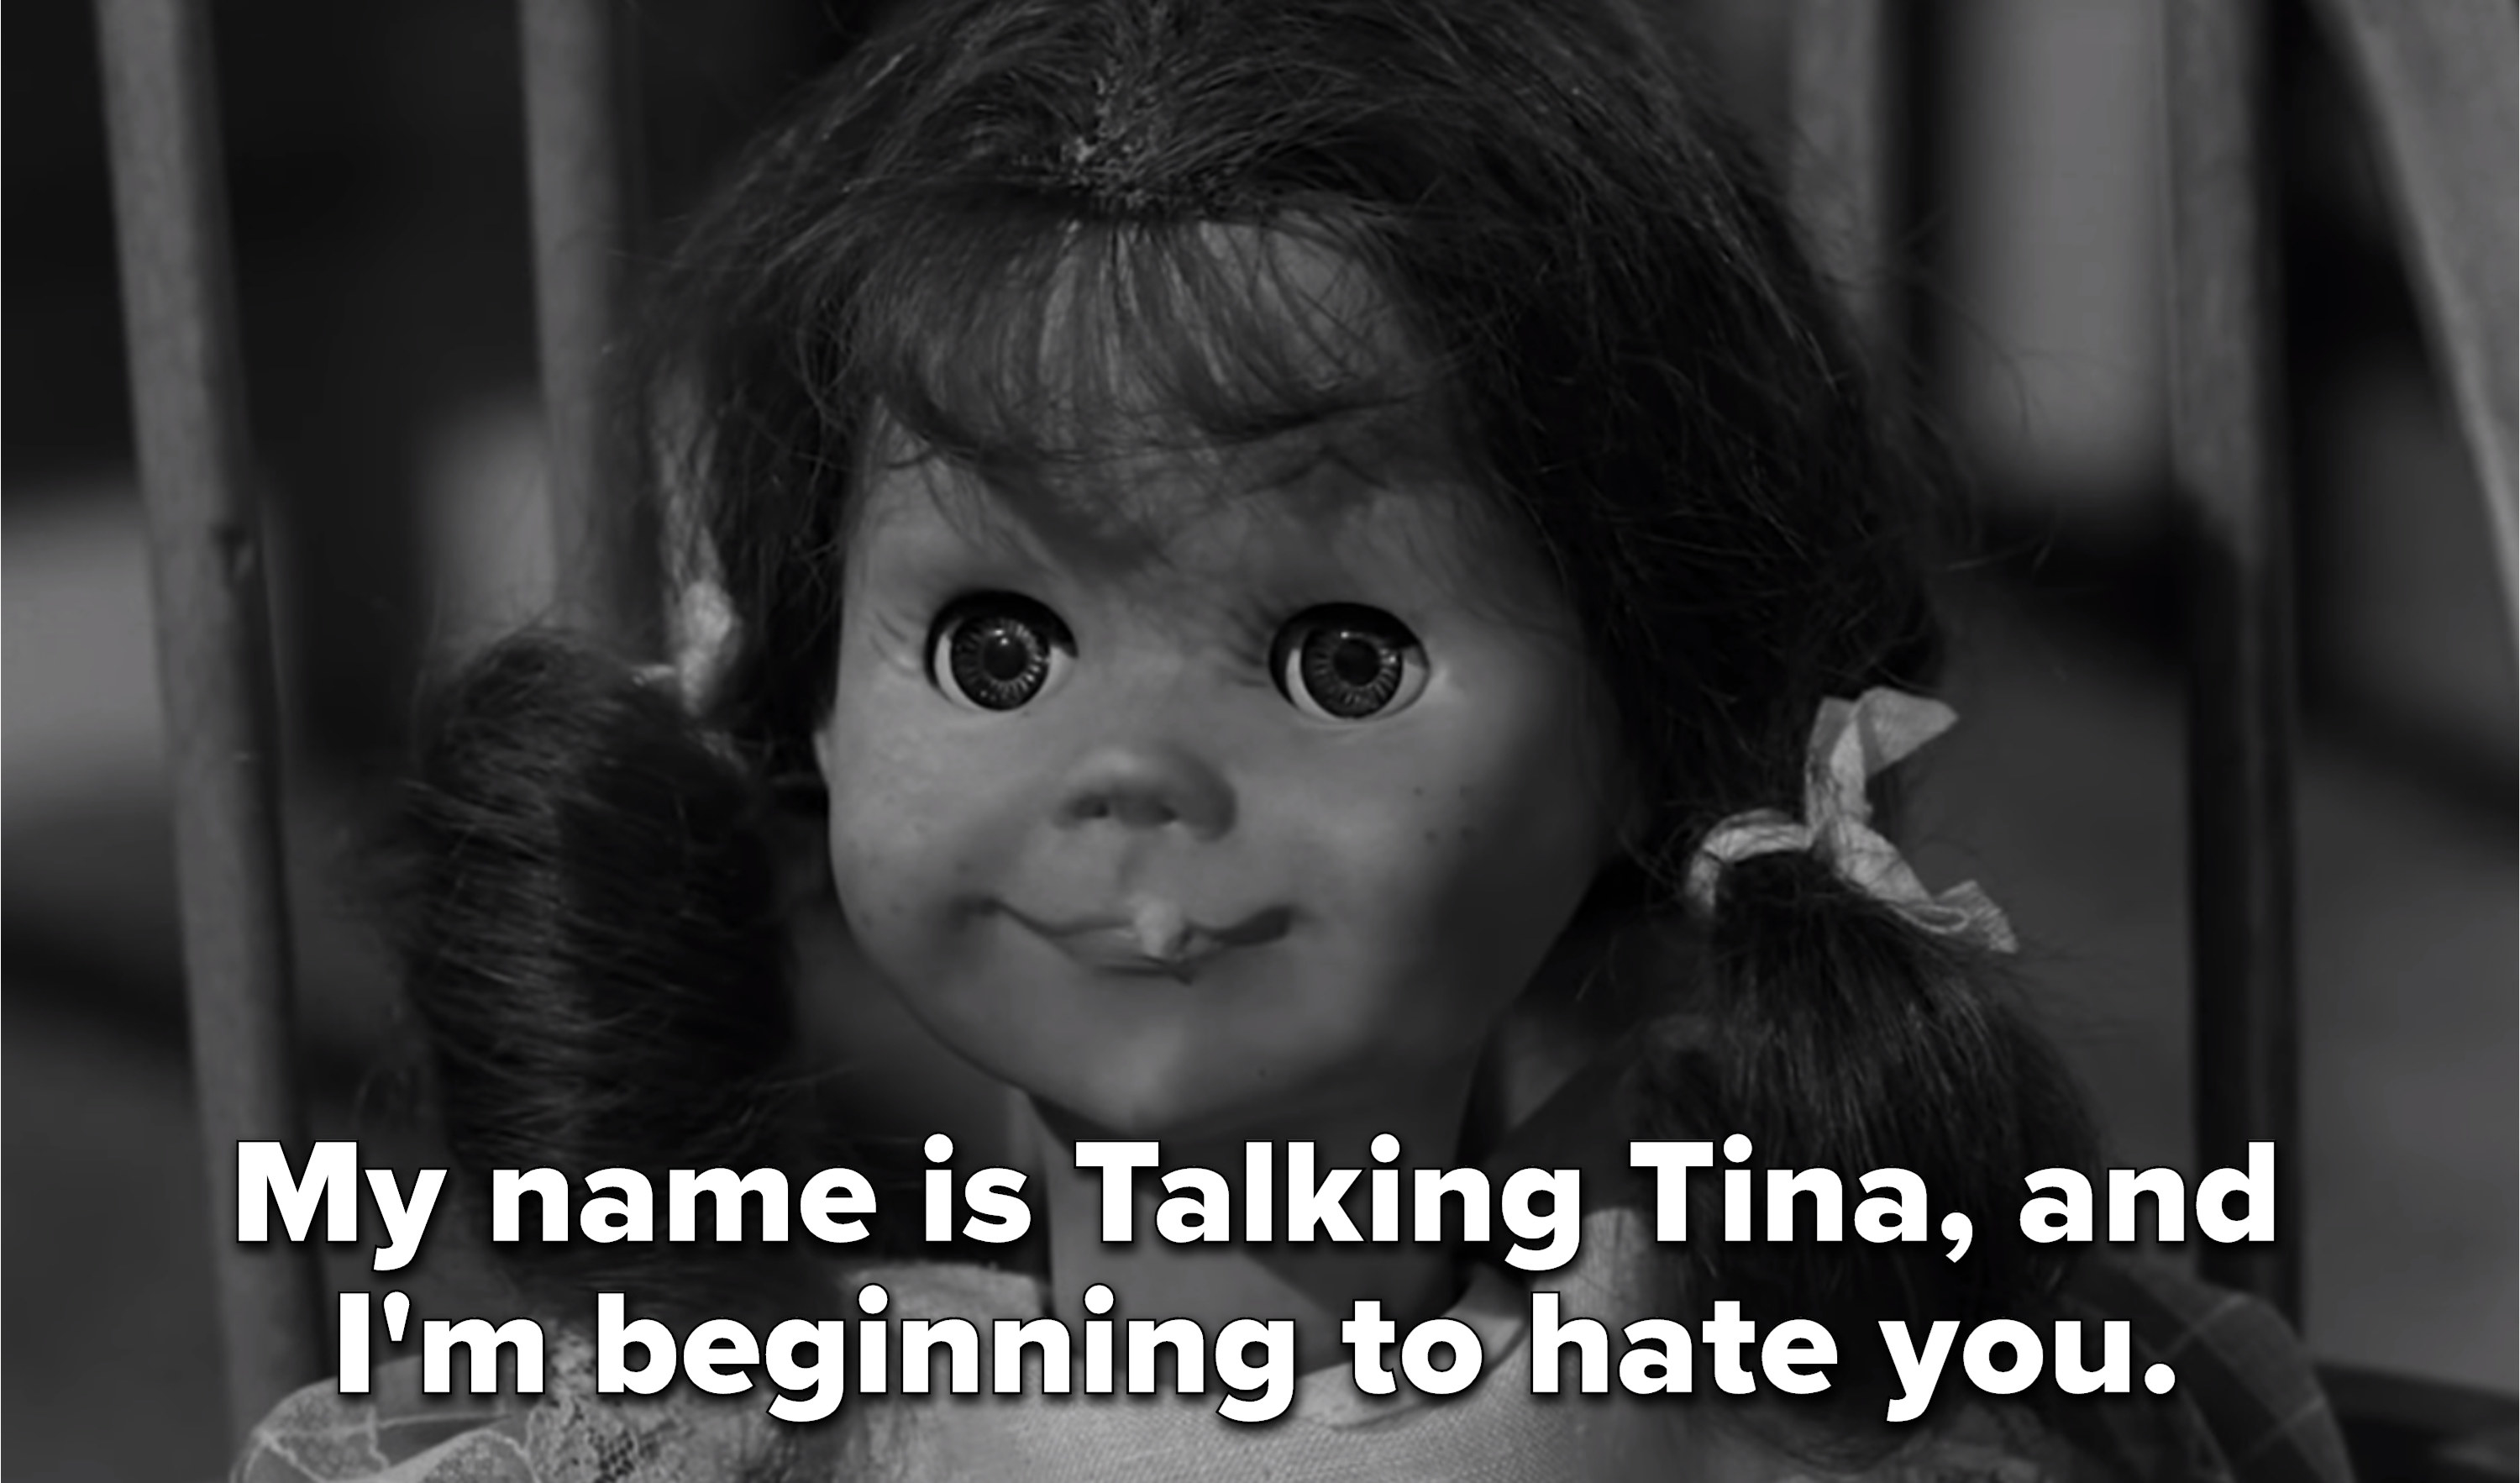 """a doll of a little girl saying """"My name is Talking Tina, and I'm beginning to hate you"""""""